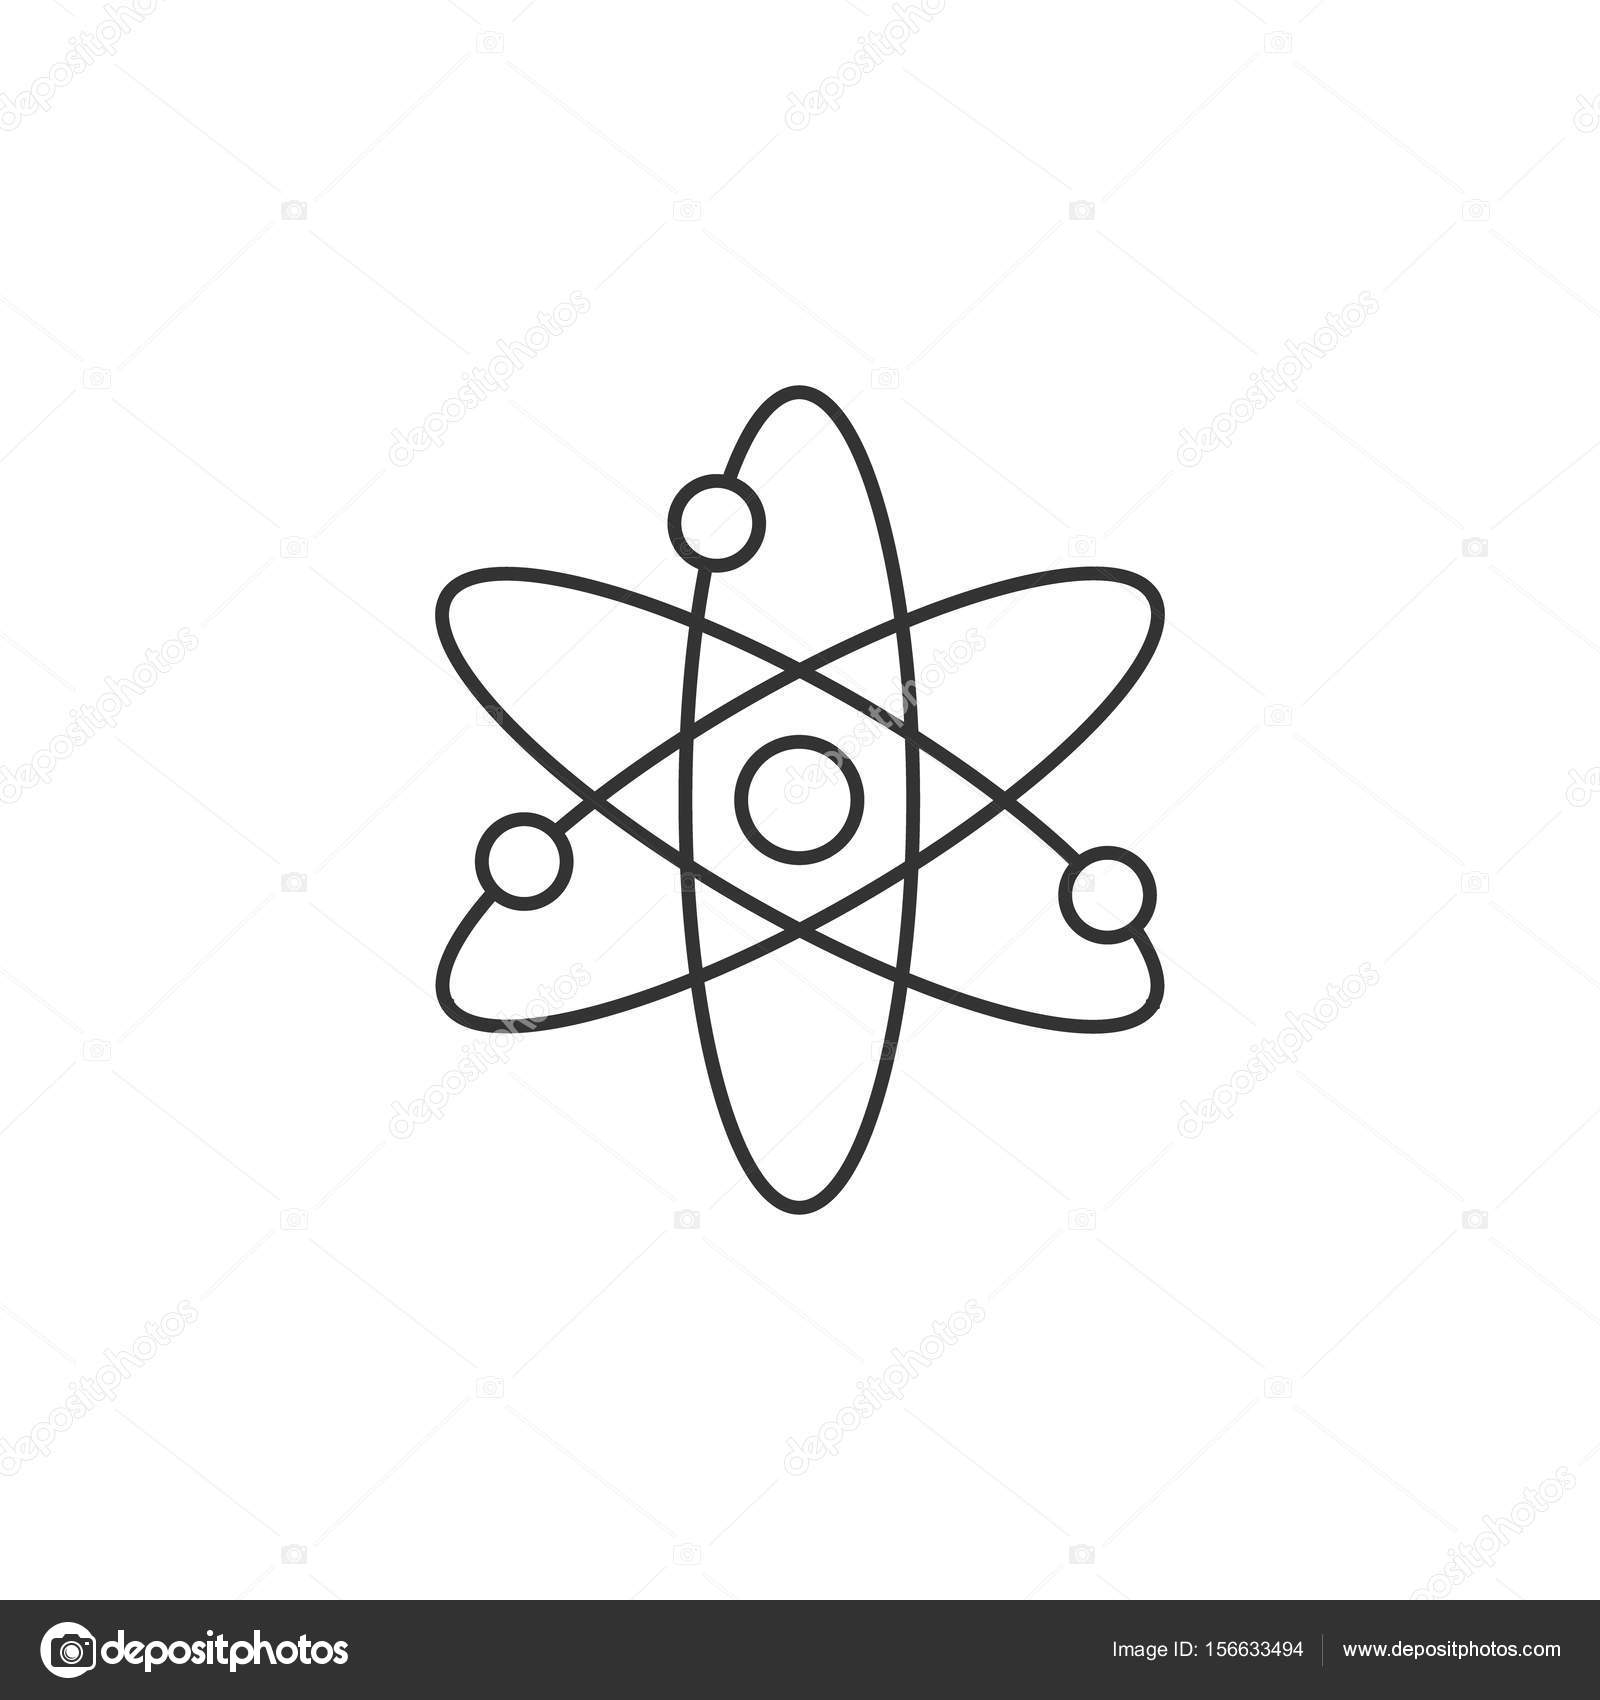 Outline icon atom structure stock vector puruan 156633494 atom structure icon in thin outline style science technology school college education molecule particles vector by puruan ccuart Image collections